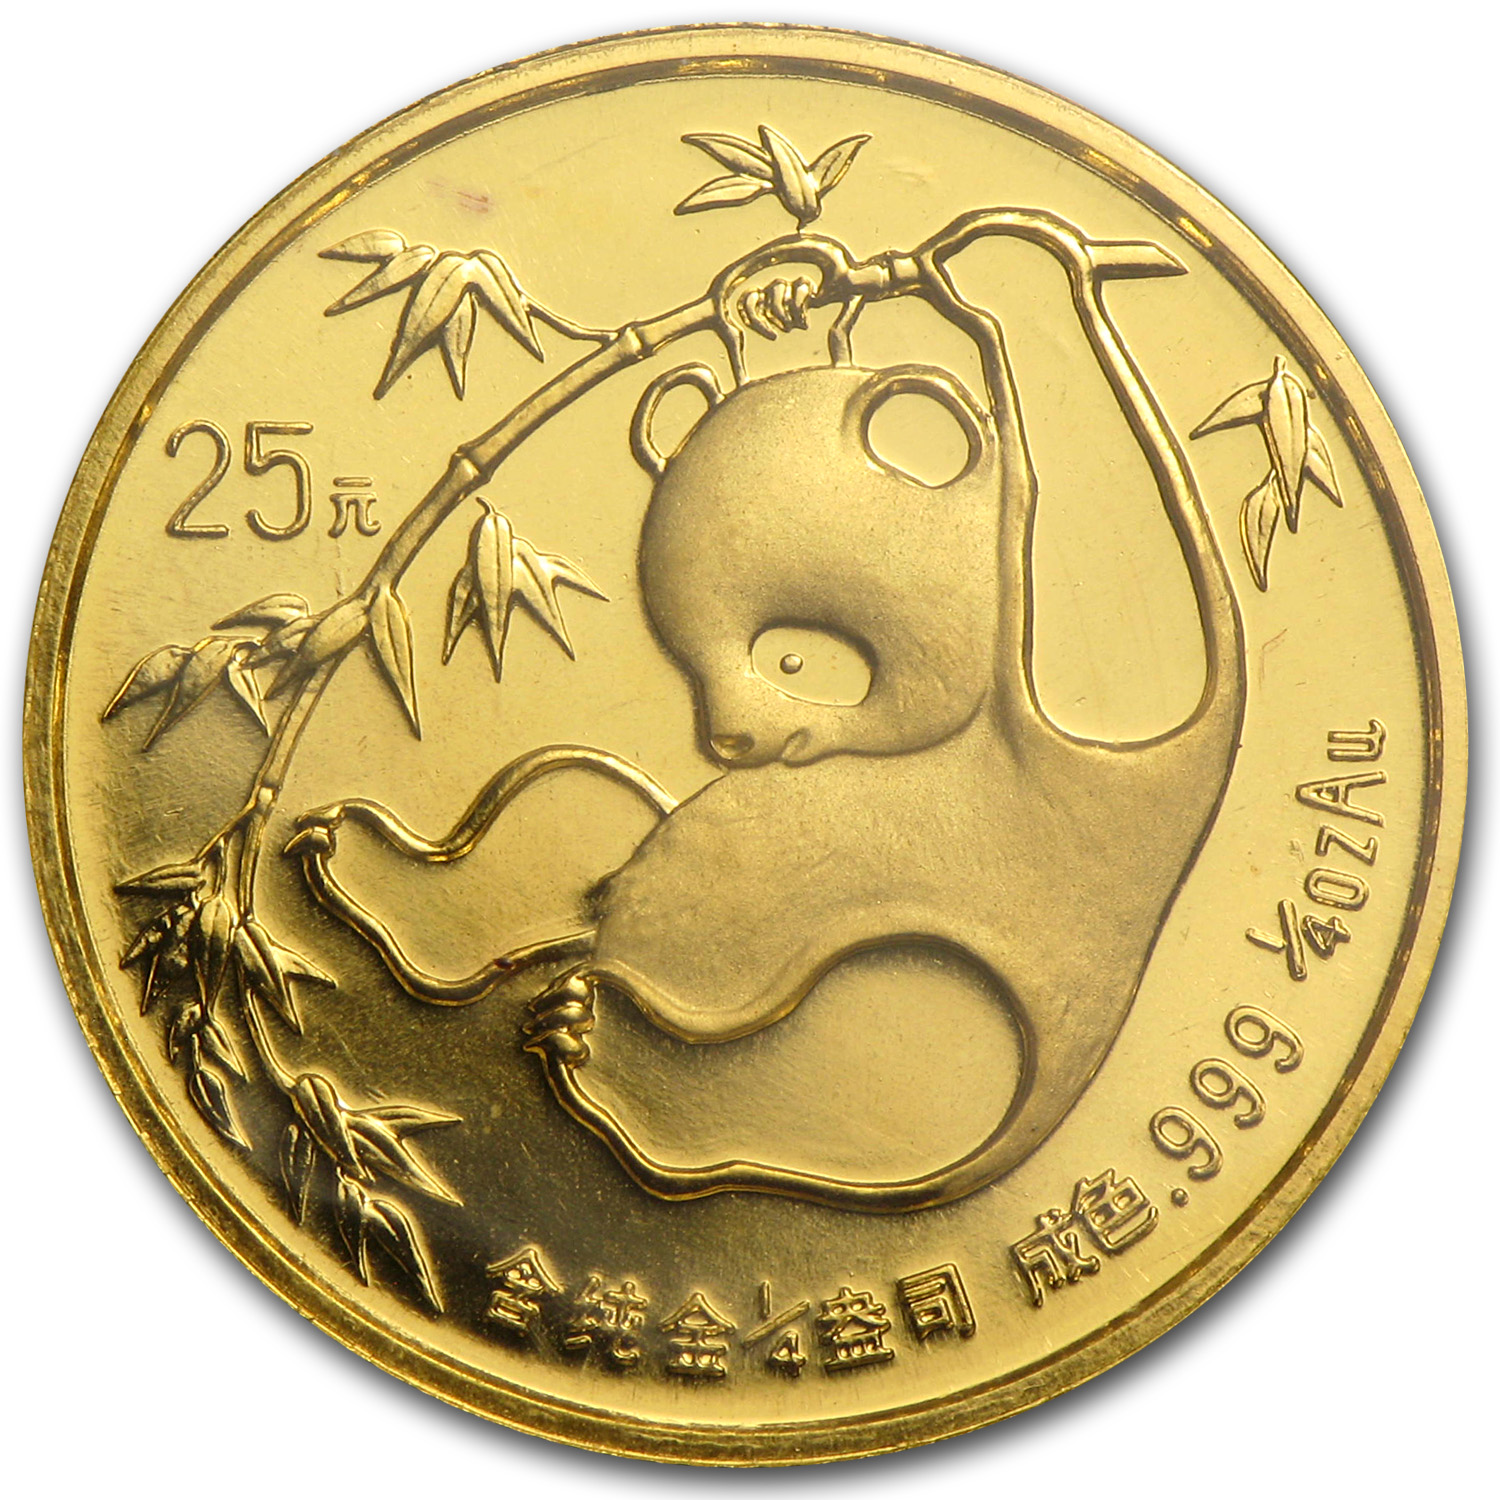 1985 (1/4 oz) Gold Chinese Pandas - (Sealed)